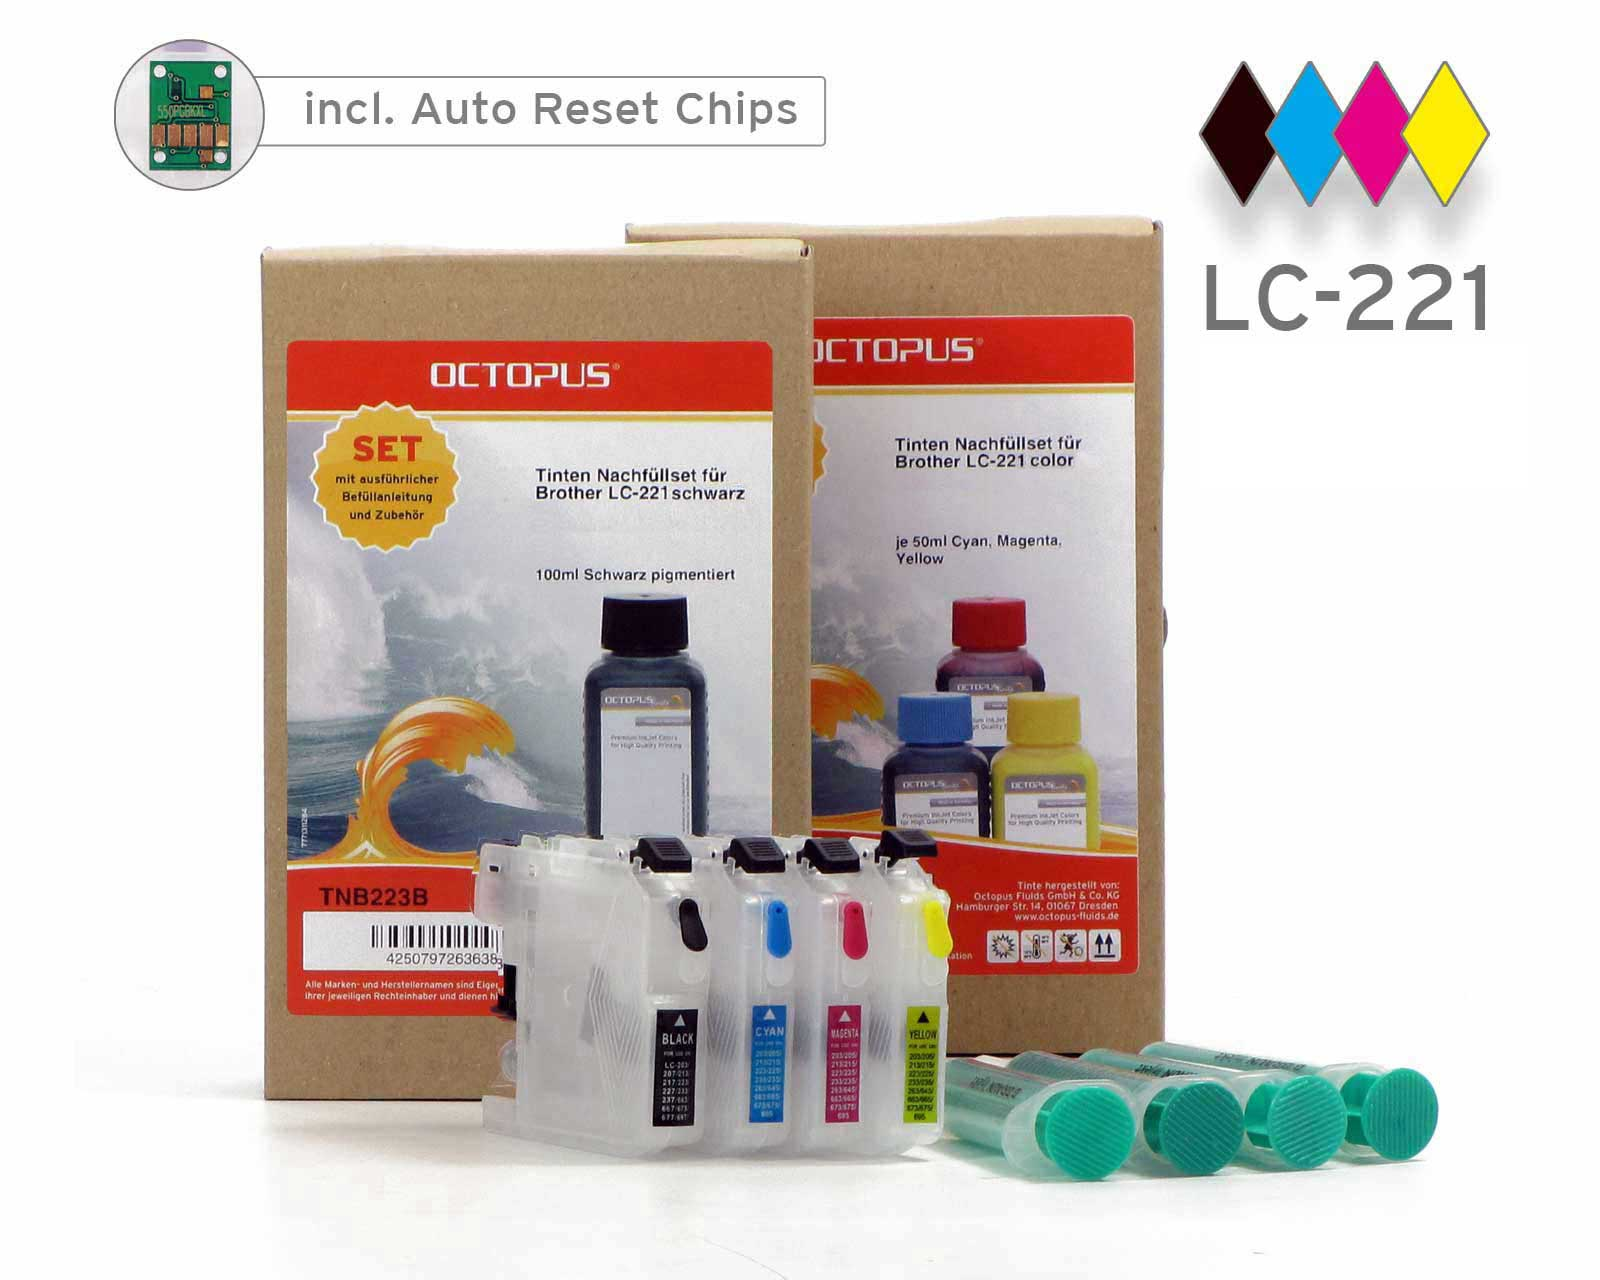 Set of refillable cartridges for Brother LC-221 with ink refill kits